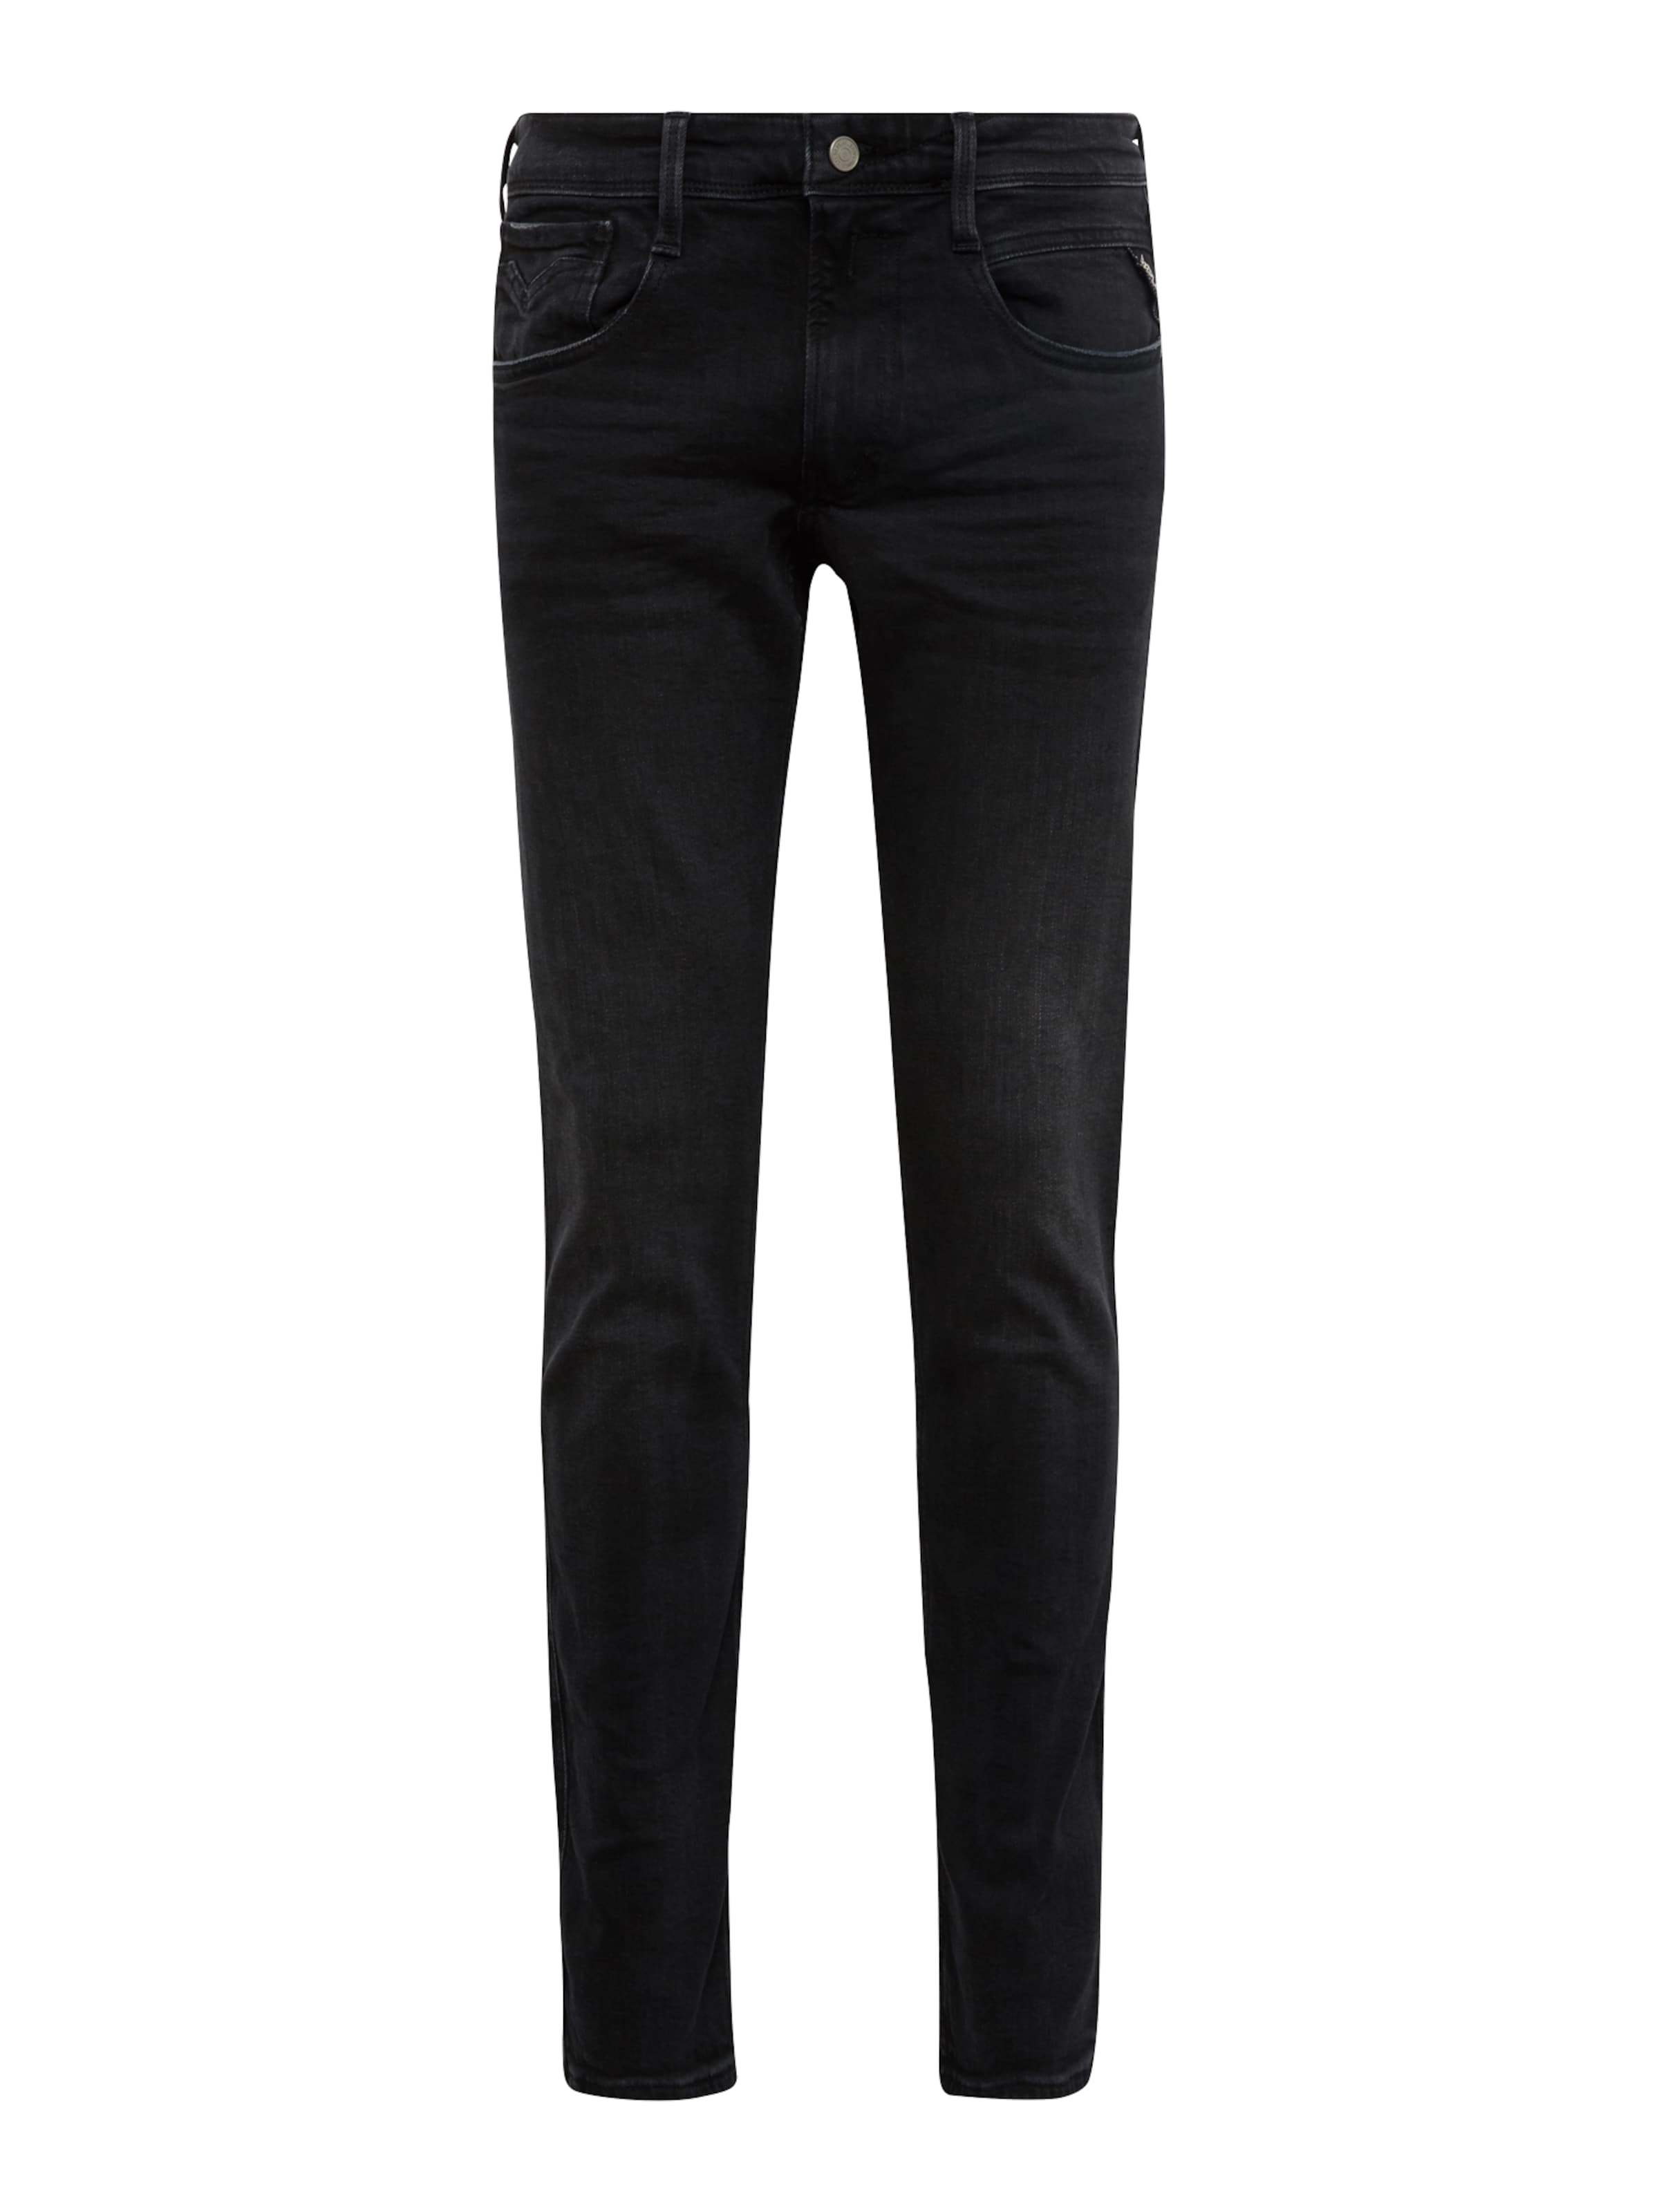 Replay 'anbass' In Jeans Replay 'anbass' Dunkelblau Jeans dBstxhrQC